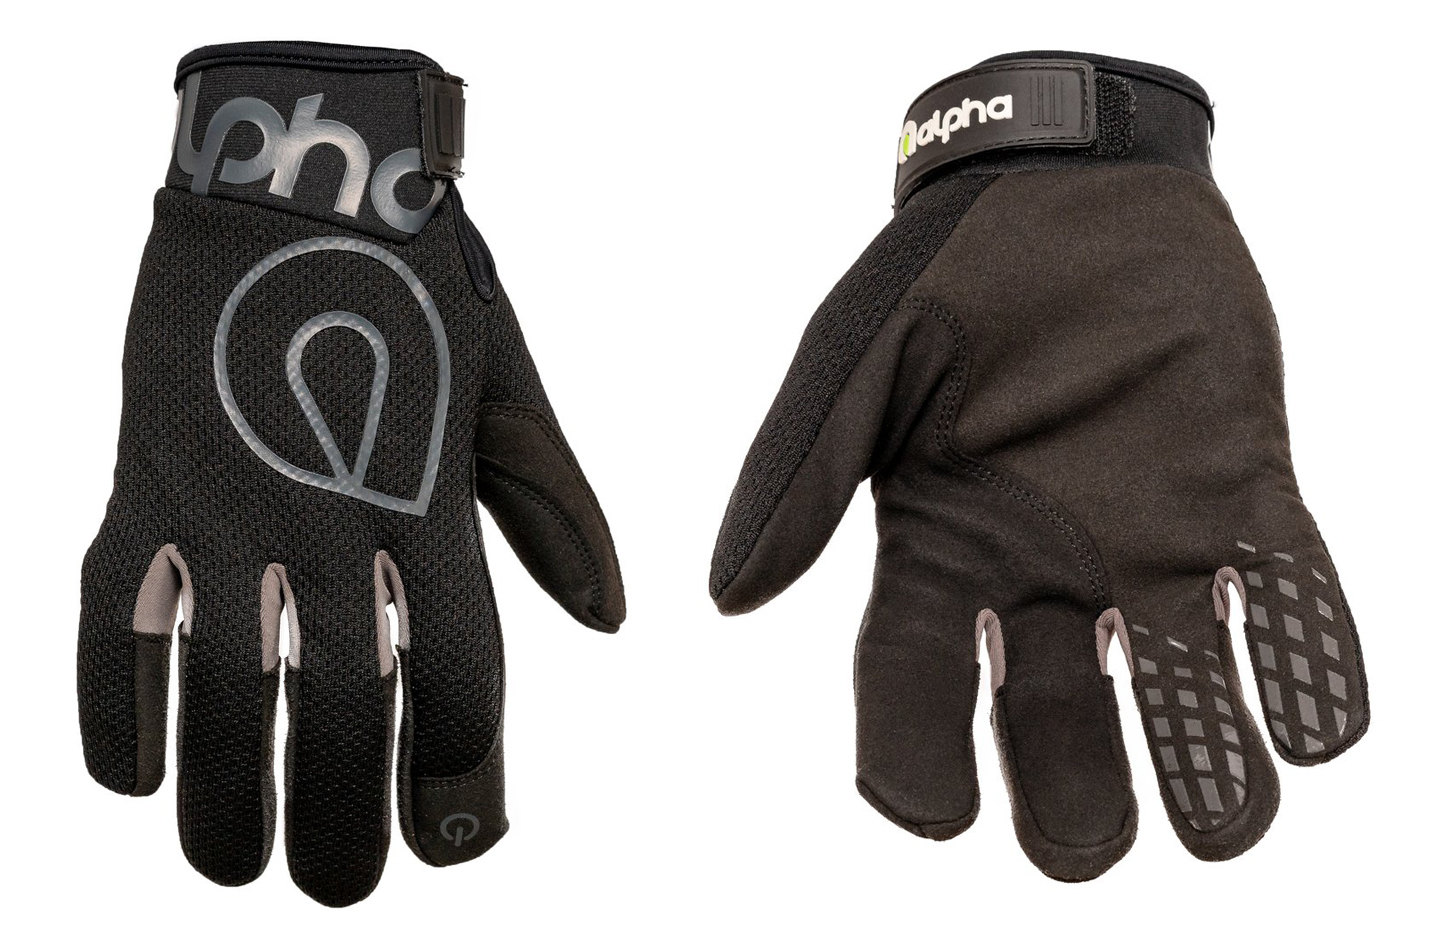 Alpha Gloves AG02-01-XXXL Gloves, Shop, The Standard, Hook and Loop Closure, Neoprene Cuff, Mesh Top, Touch Screen Capable, Synthetic Leather Palm, Black, 3X-Large, Pair